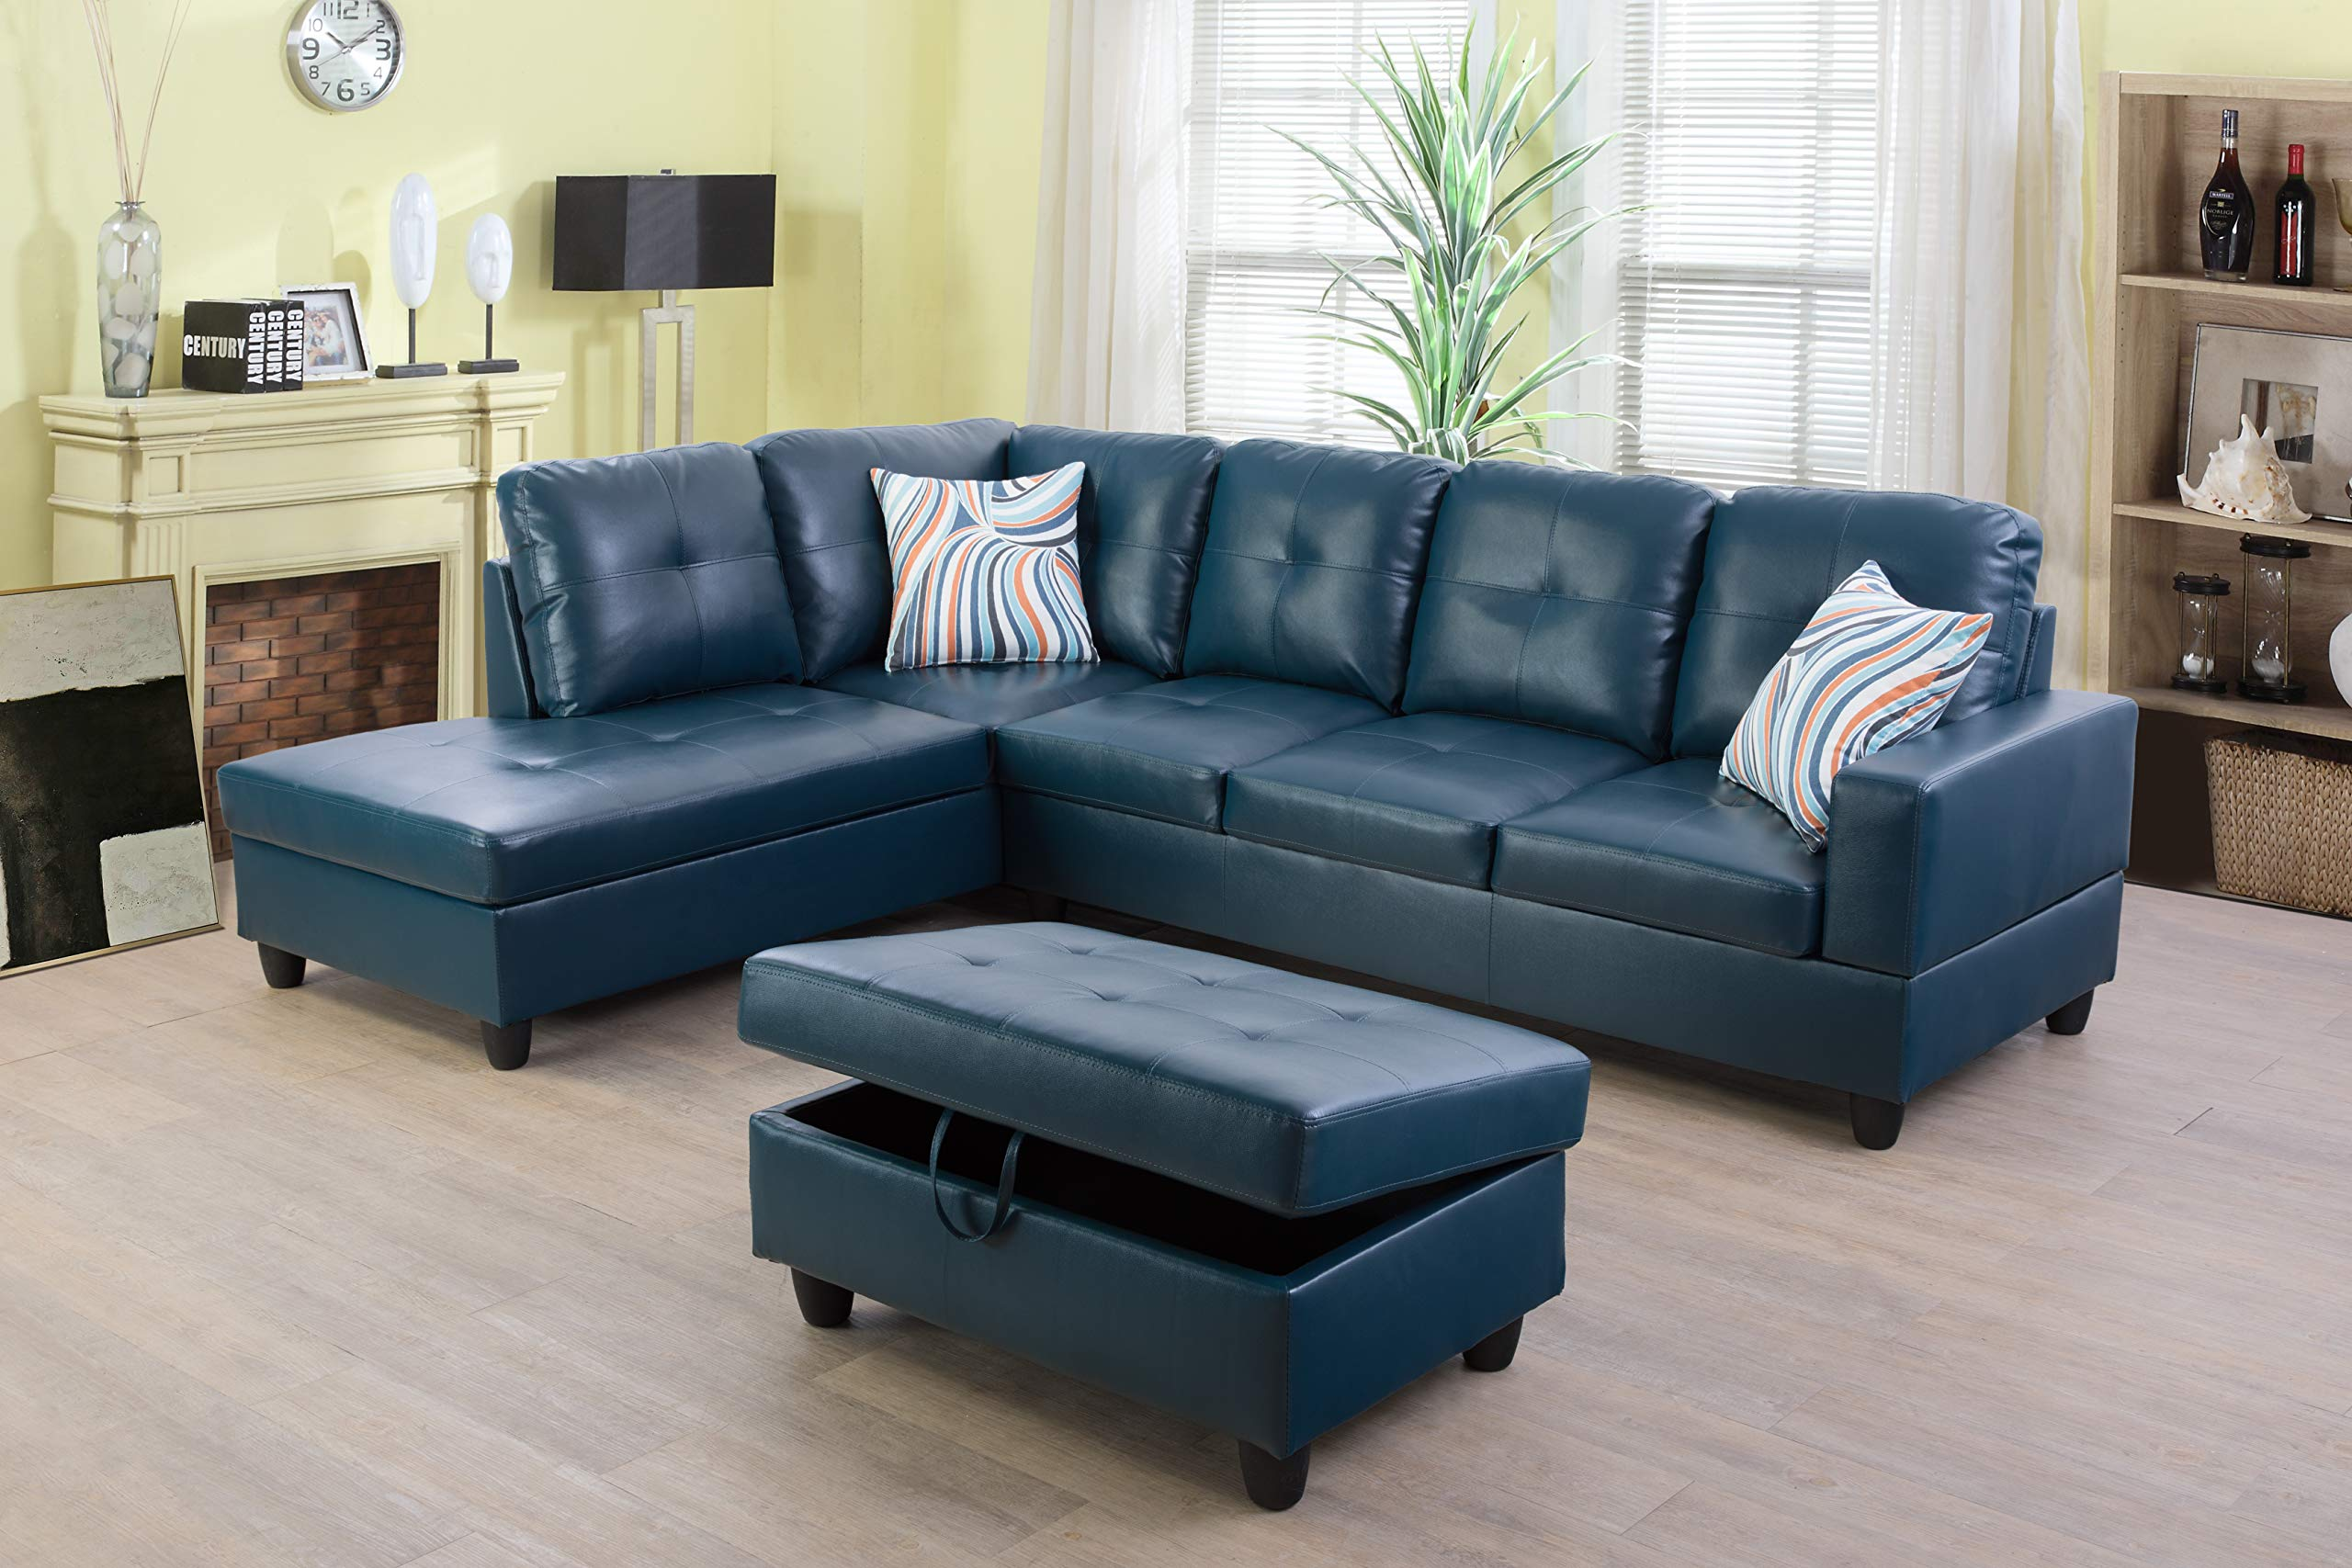 Beverly Fine Funiture Sectional Sofa Set, Turquoise by Beverly Fine Funiture